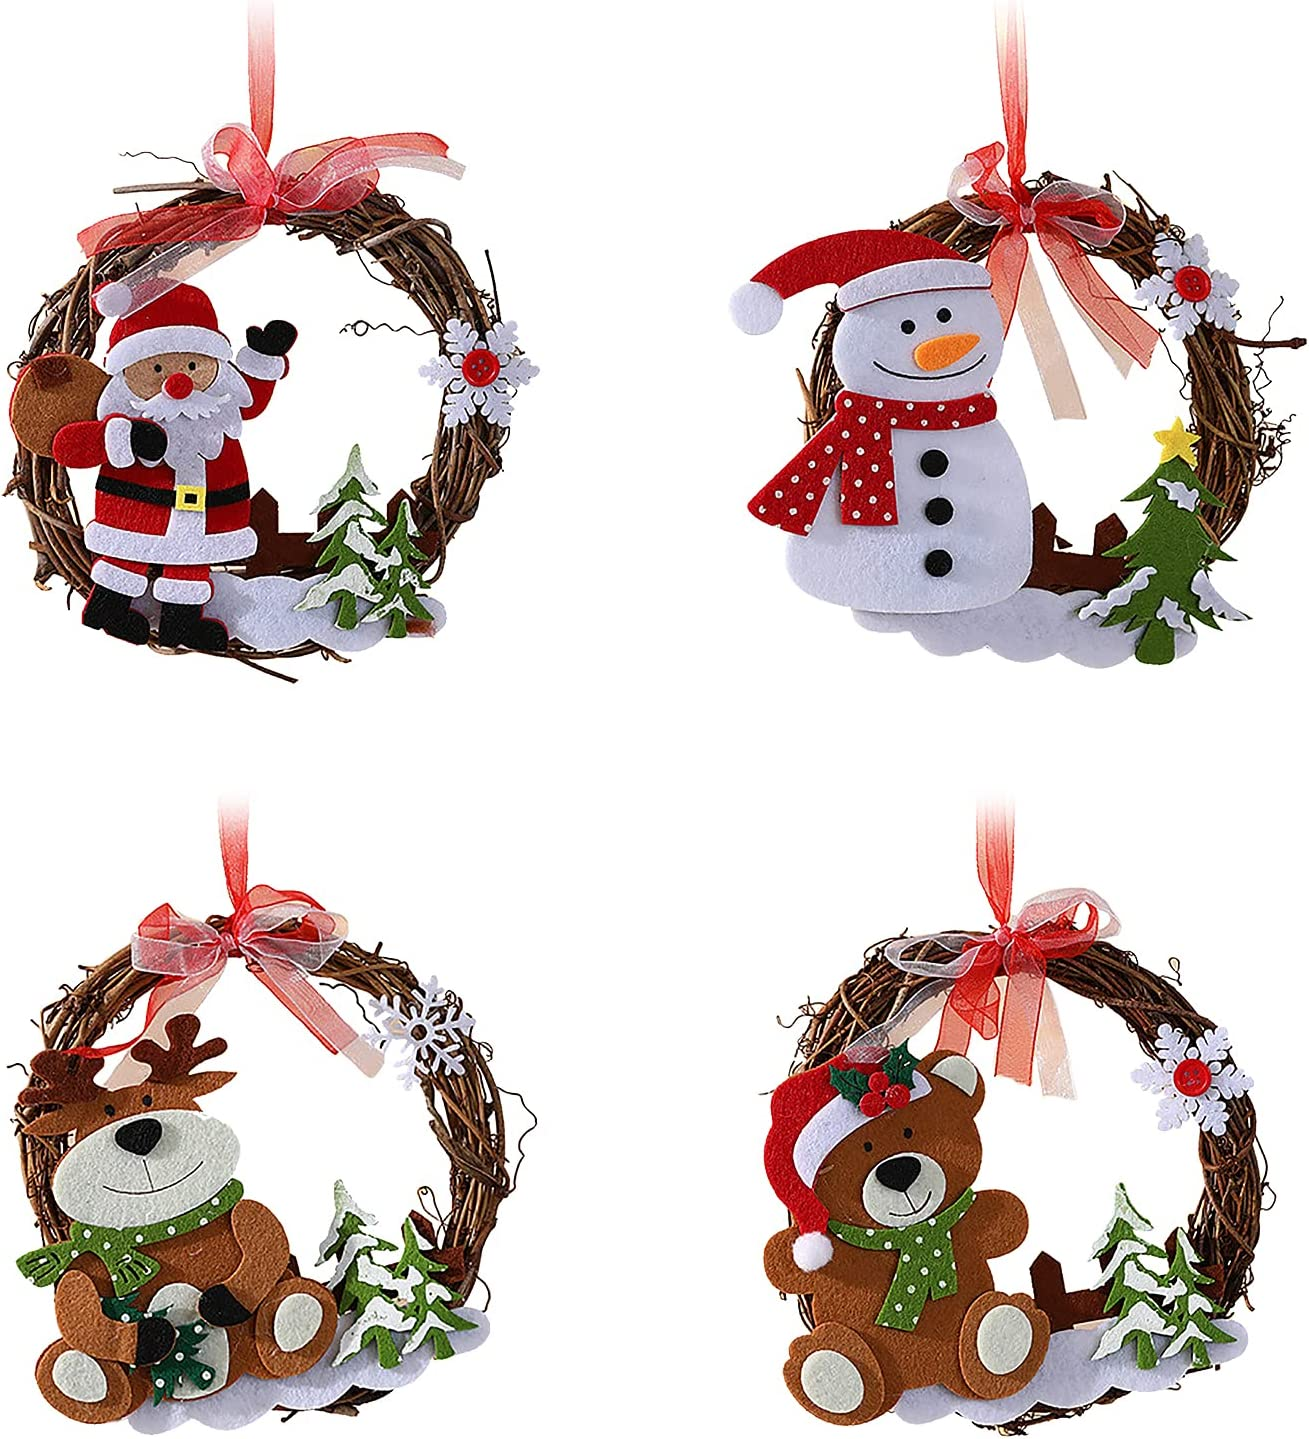 BDSJBJ 4Pcs Shipping included Christmas Wreaths Hanging Wreath Santa Rattan with 5% OFF